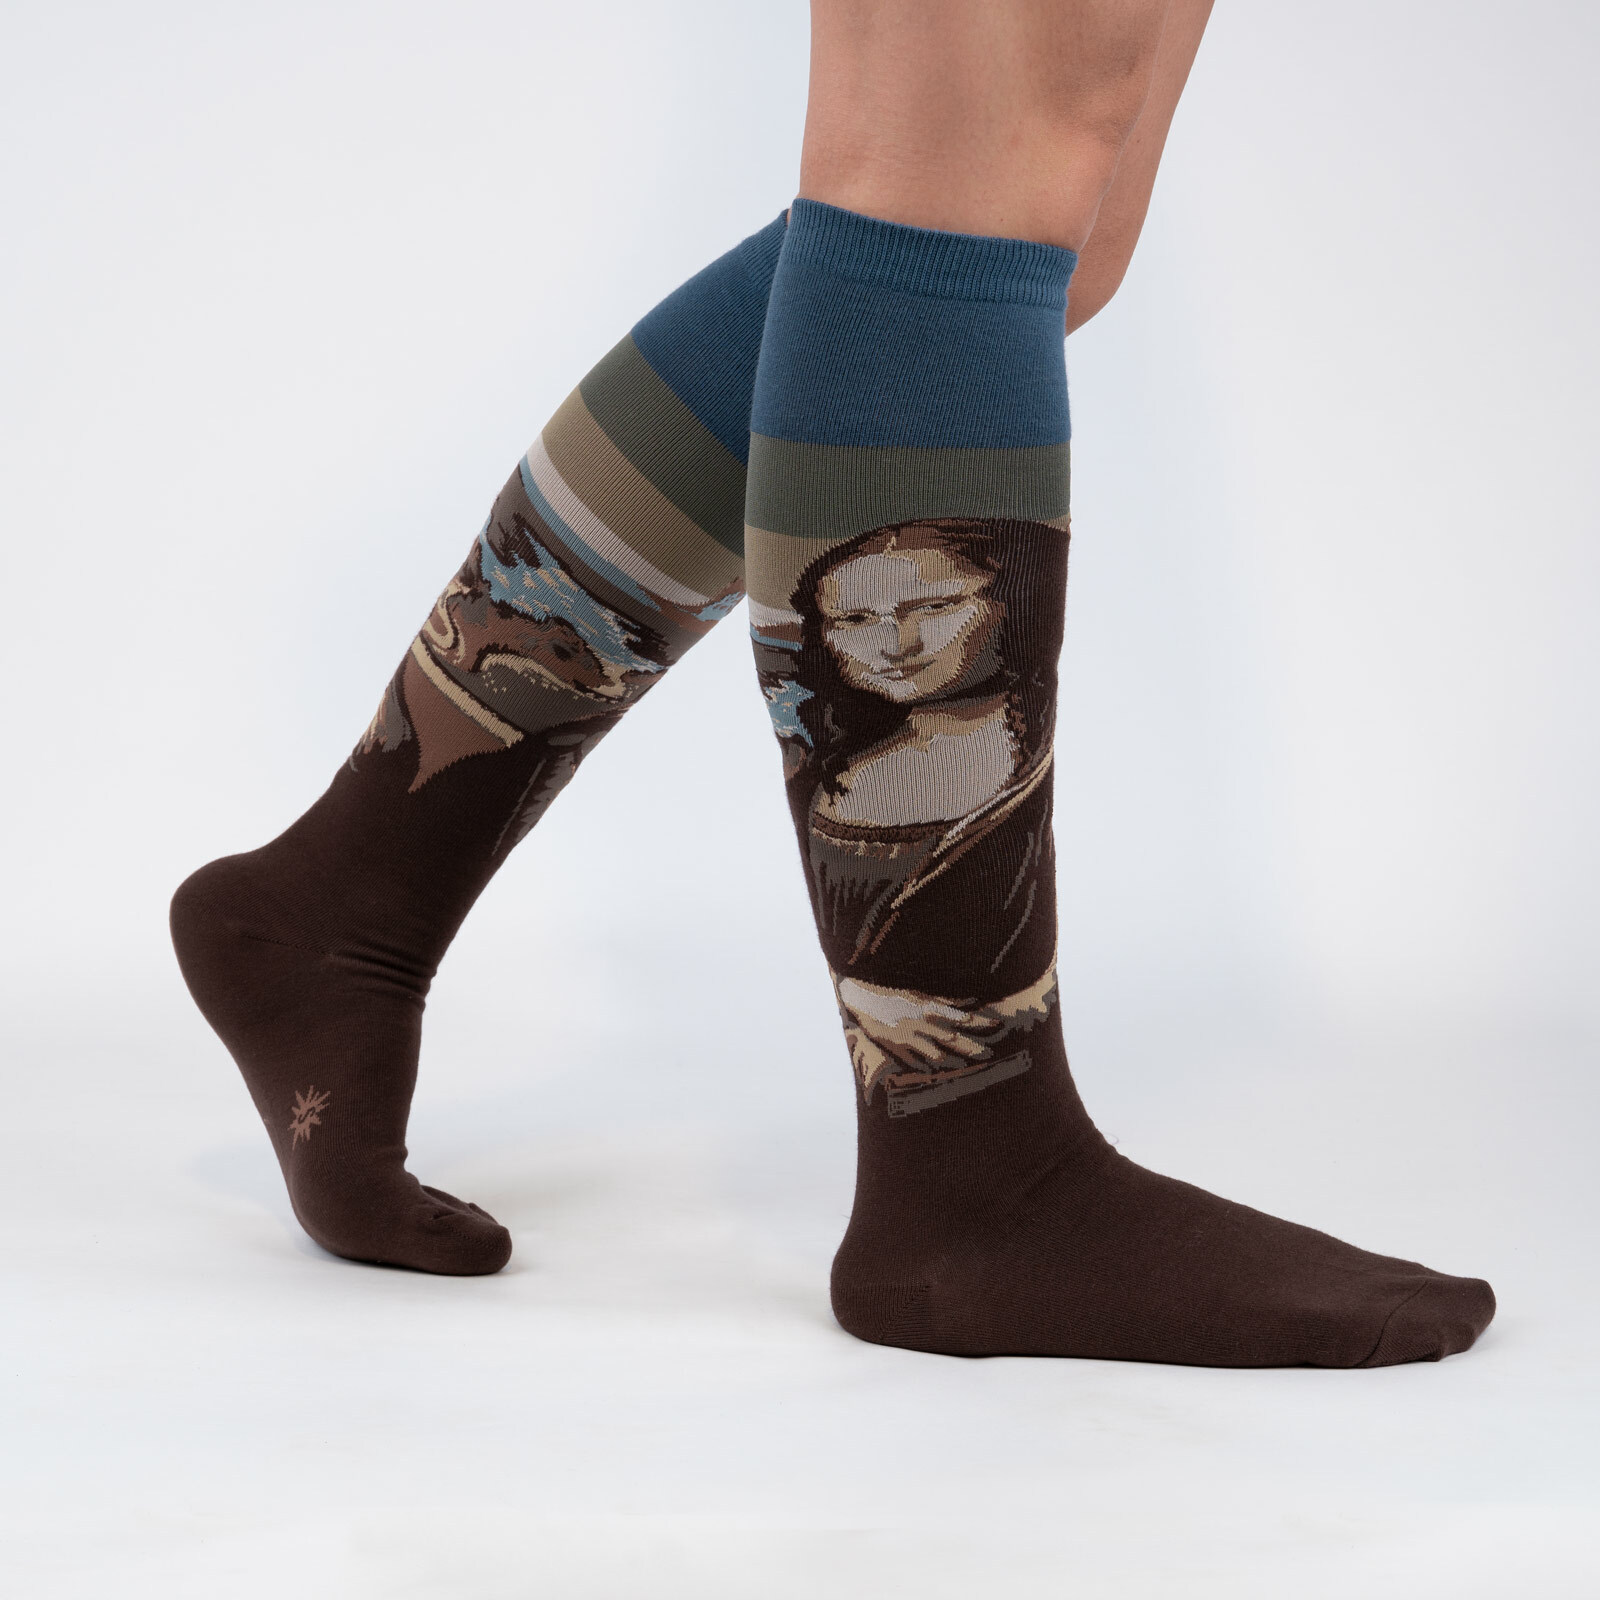 model wearing Mona Lisa - Fine Art Leonardo Da Vinci Knee High Socks Brown - Women's